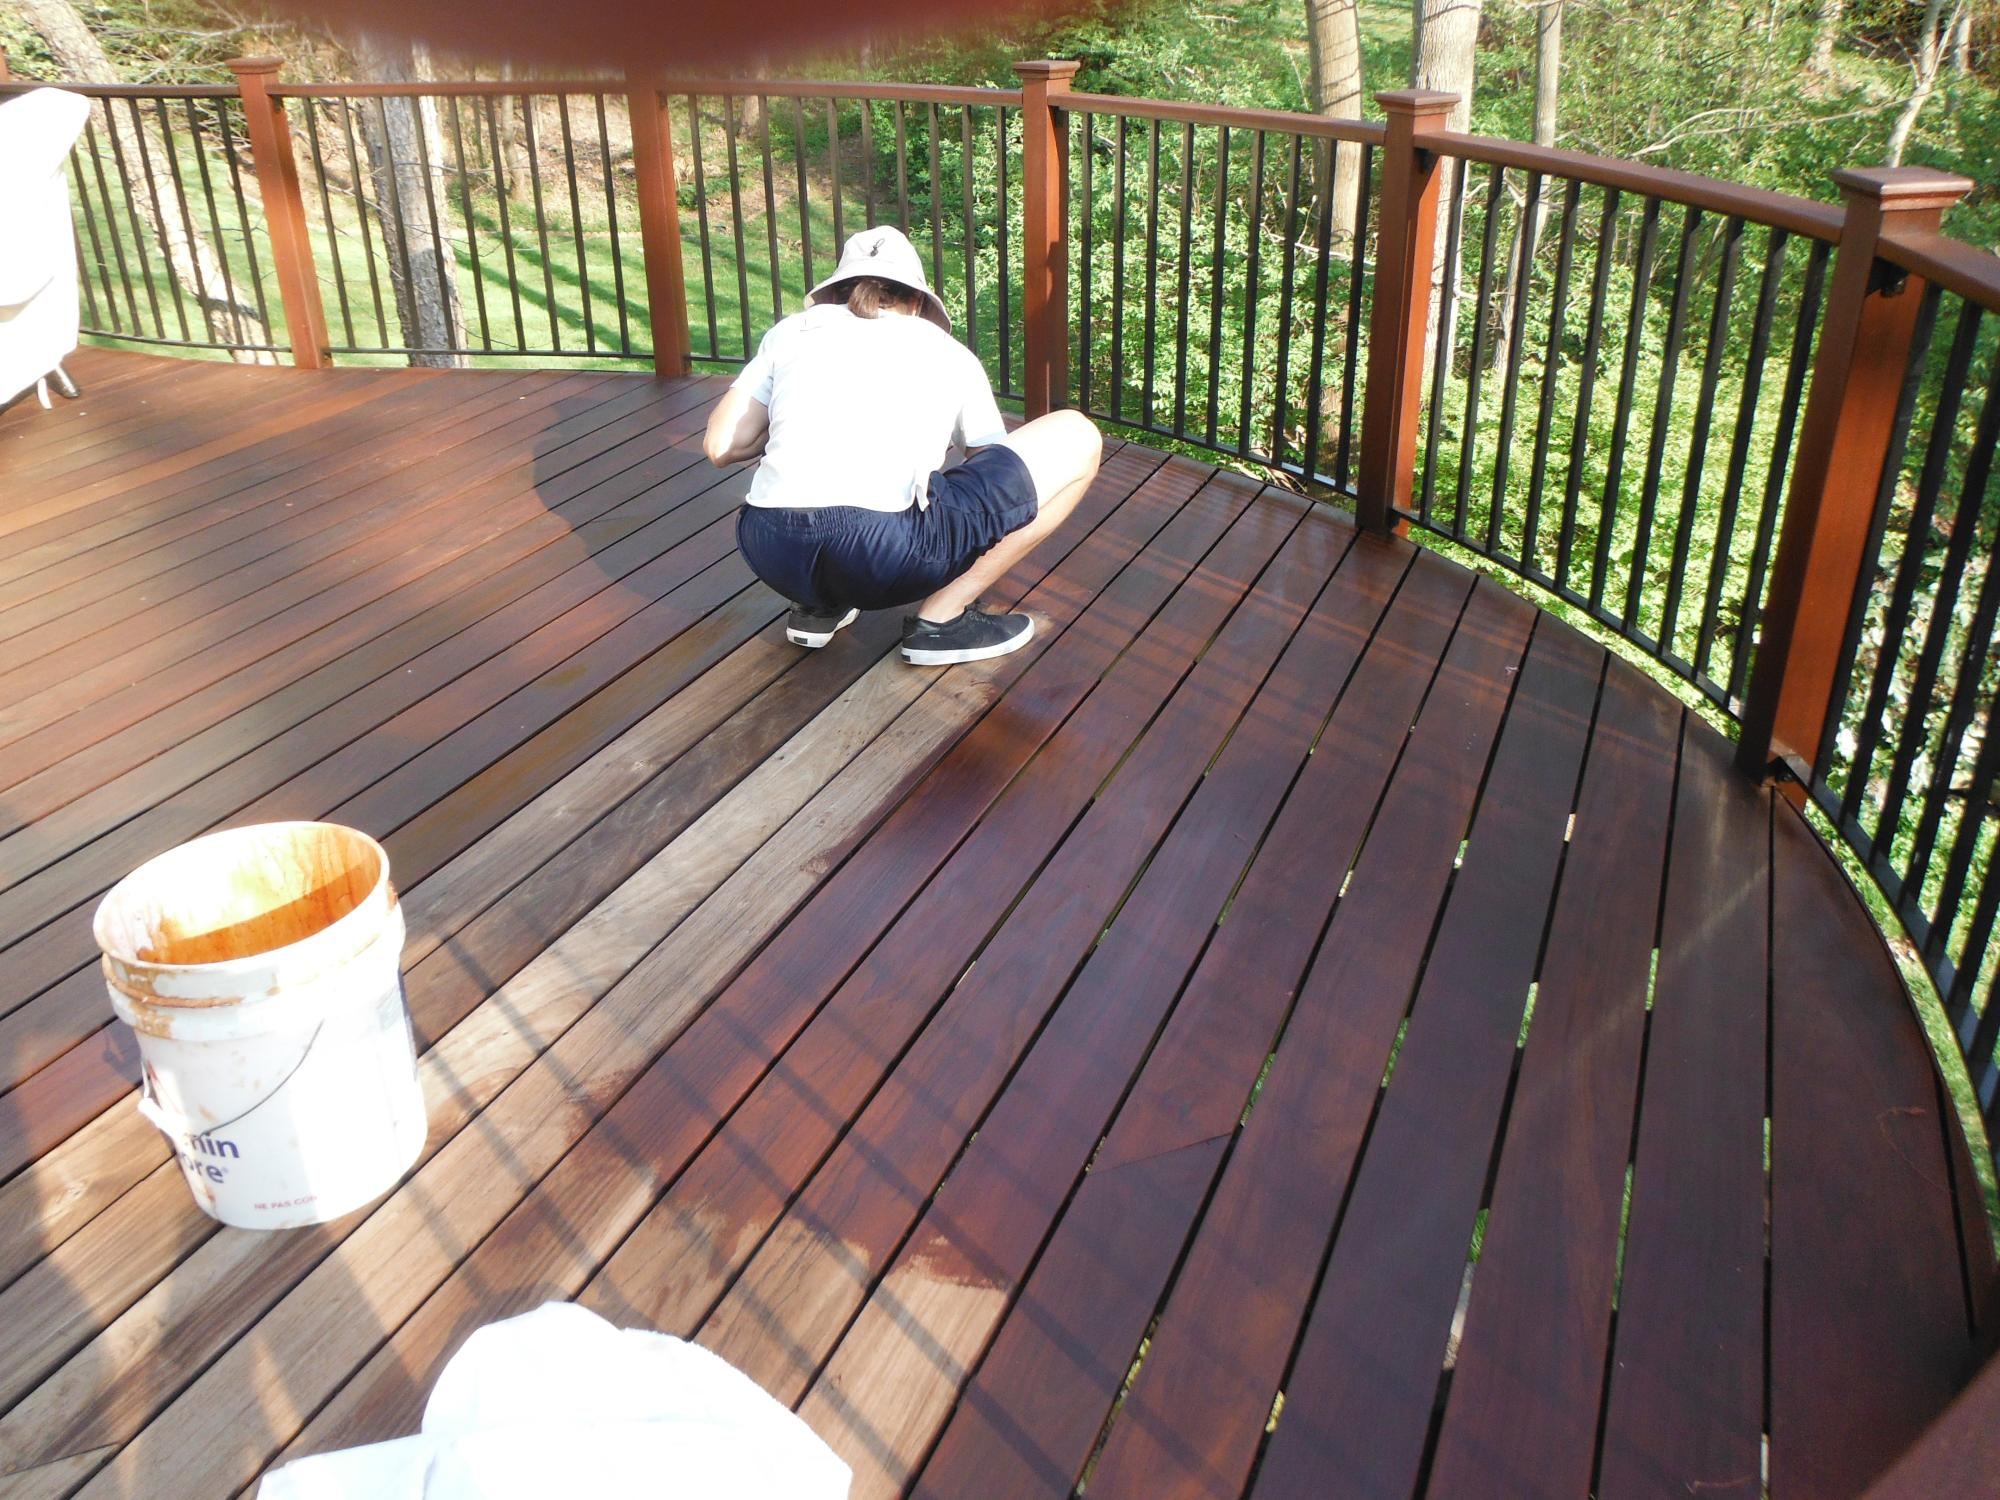 Brushing IPE deck